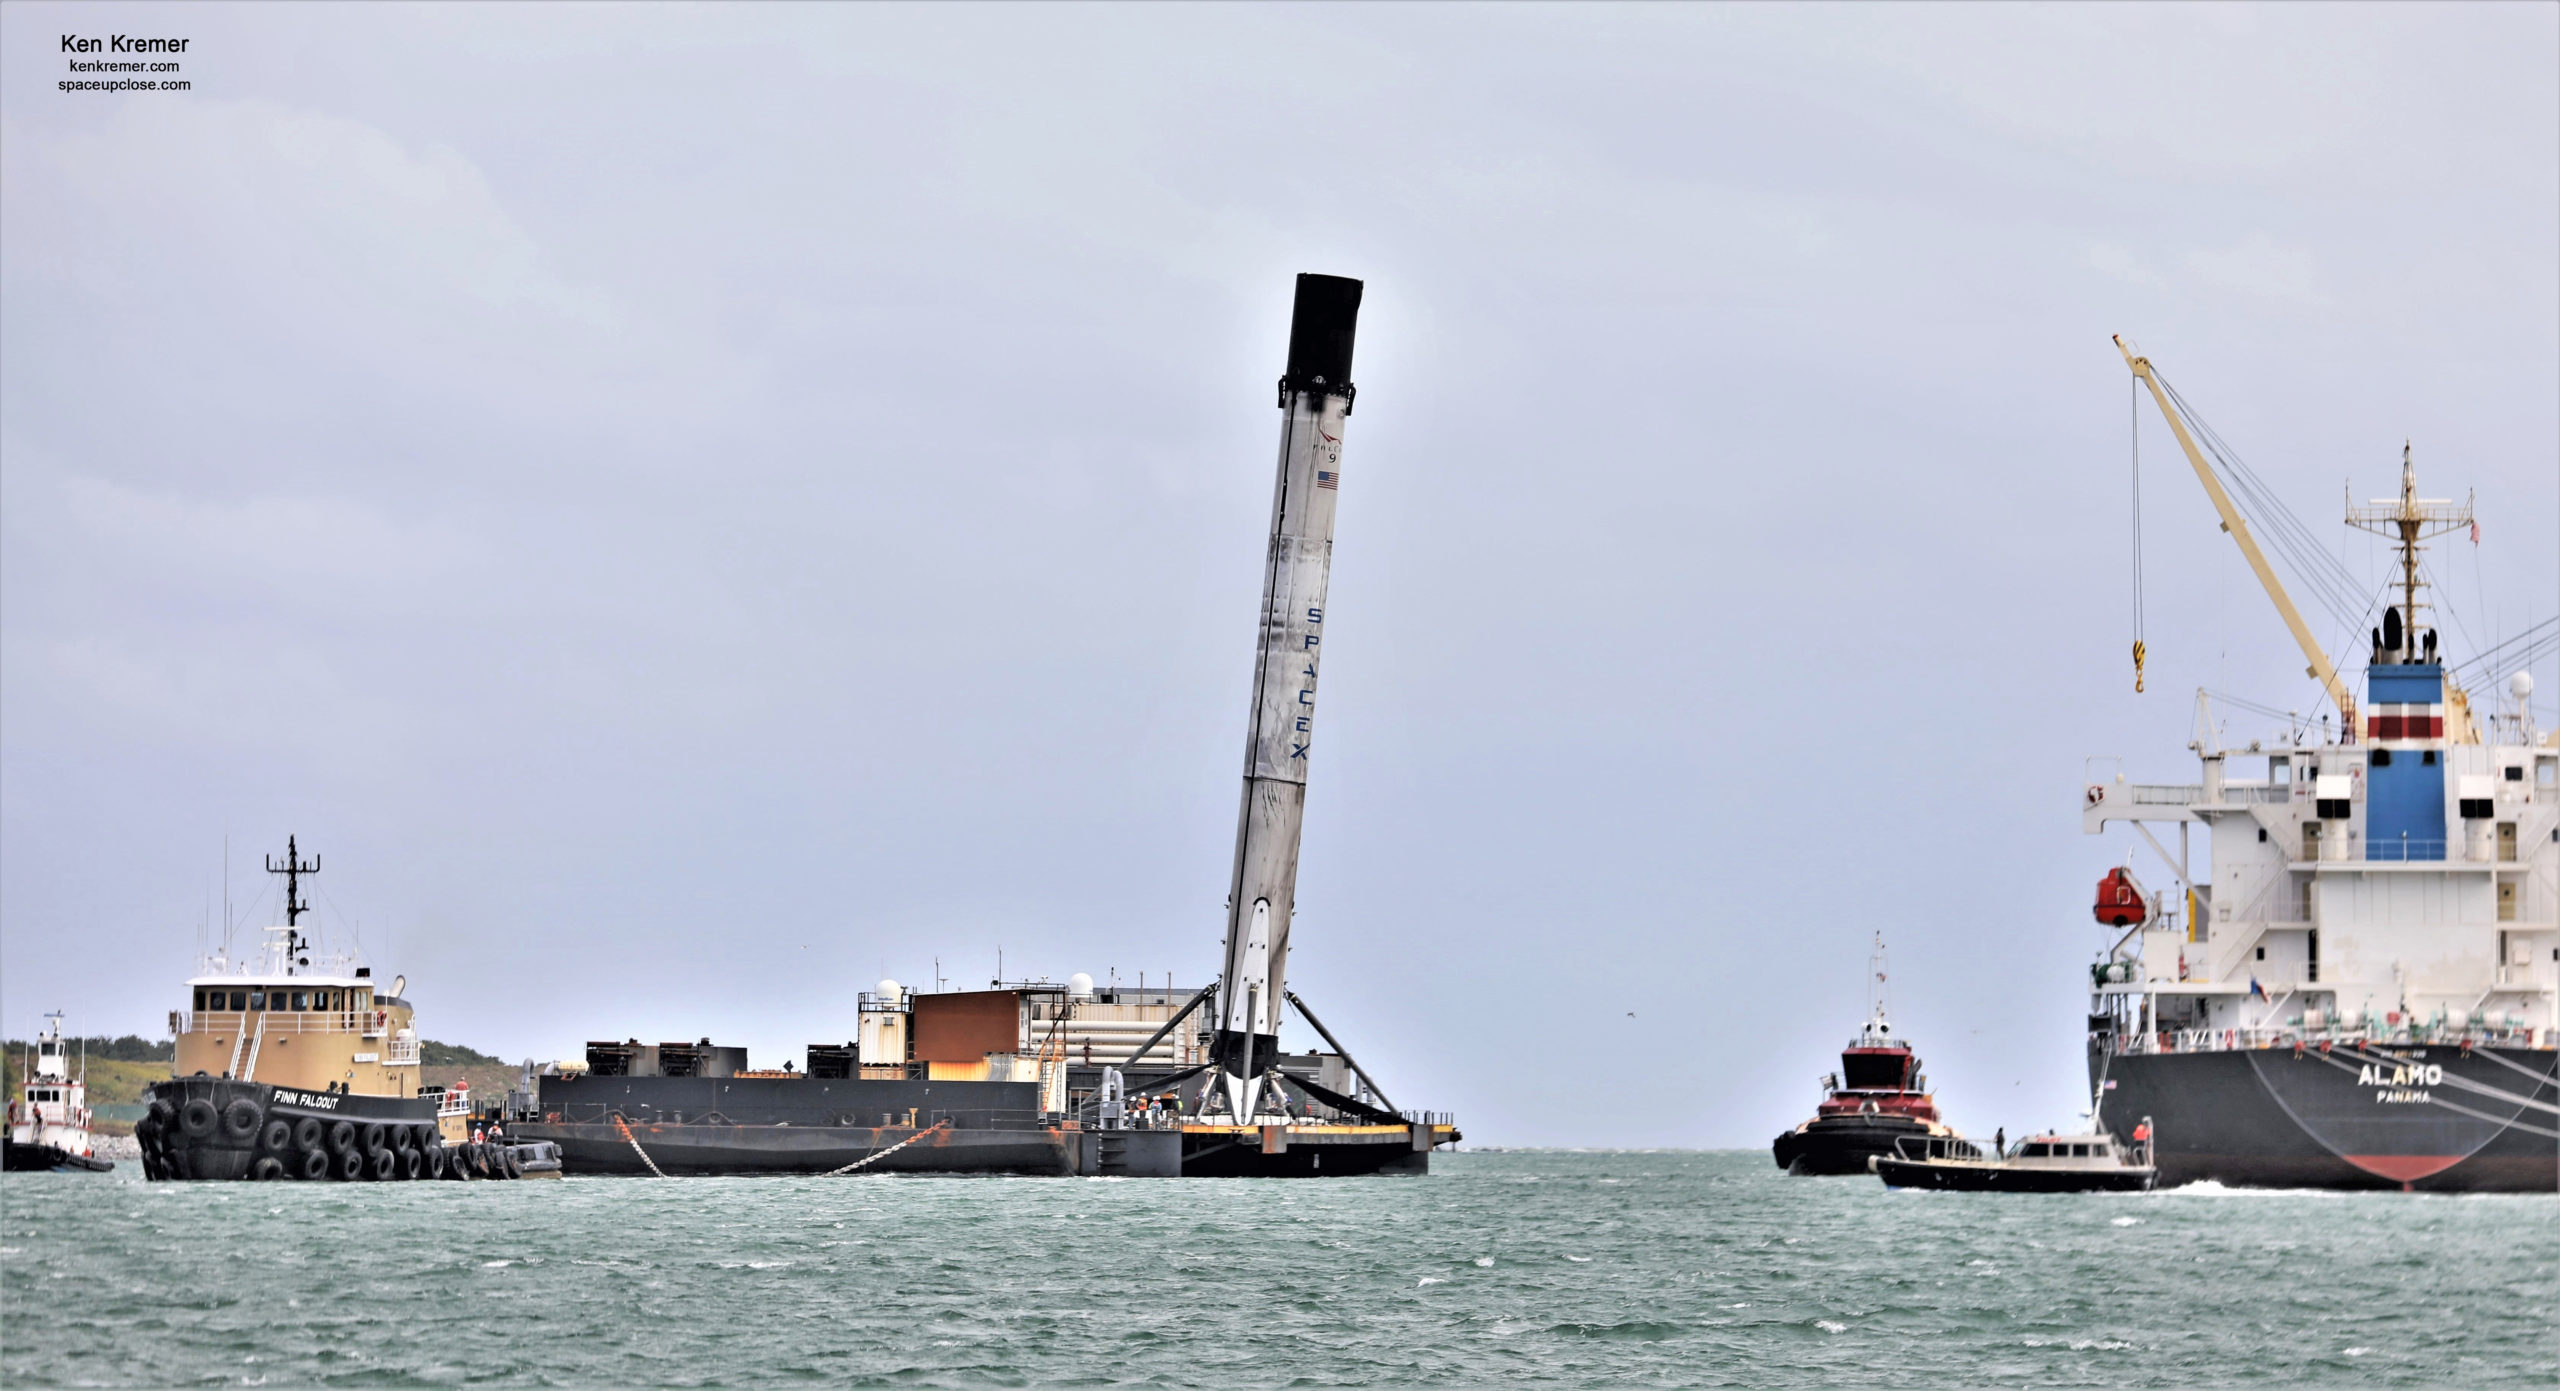 Leaning Landed SpaceX Crew 1 Historic Falcon 9 Launch Booster Returns to Port Canaveral on Droneship: Photos